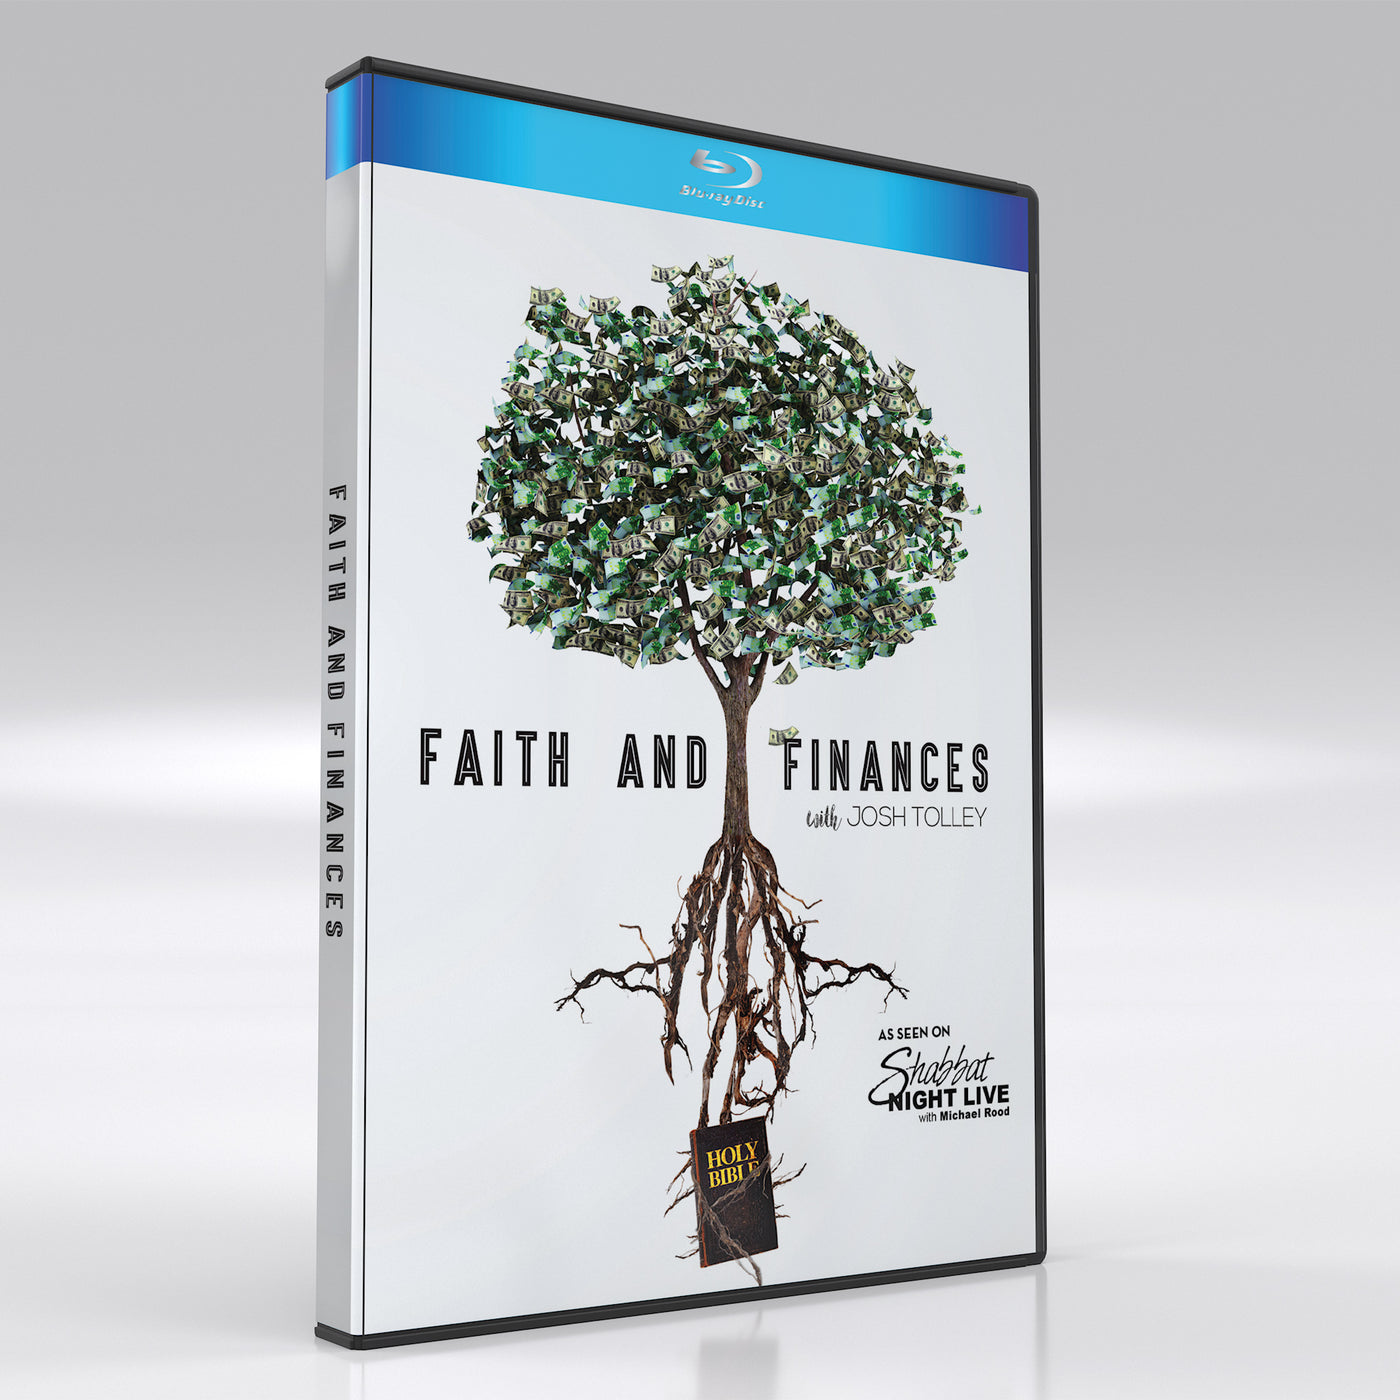 Faith and Finances - with Josh Tolley